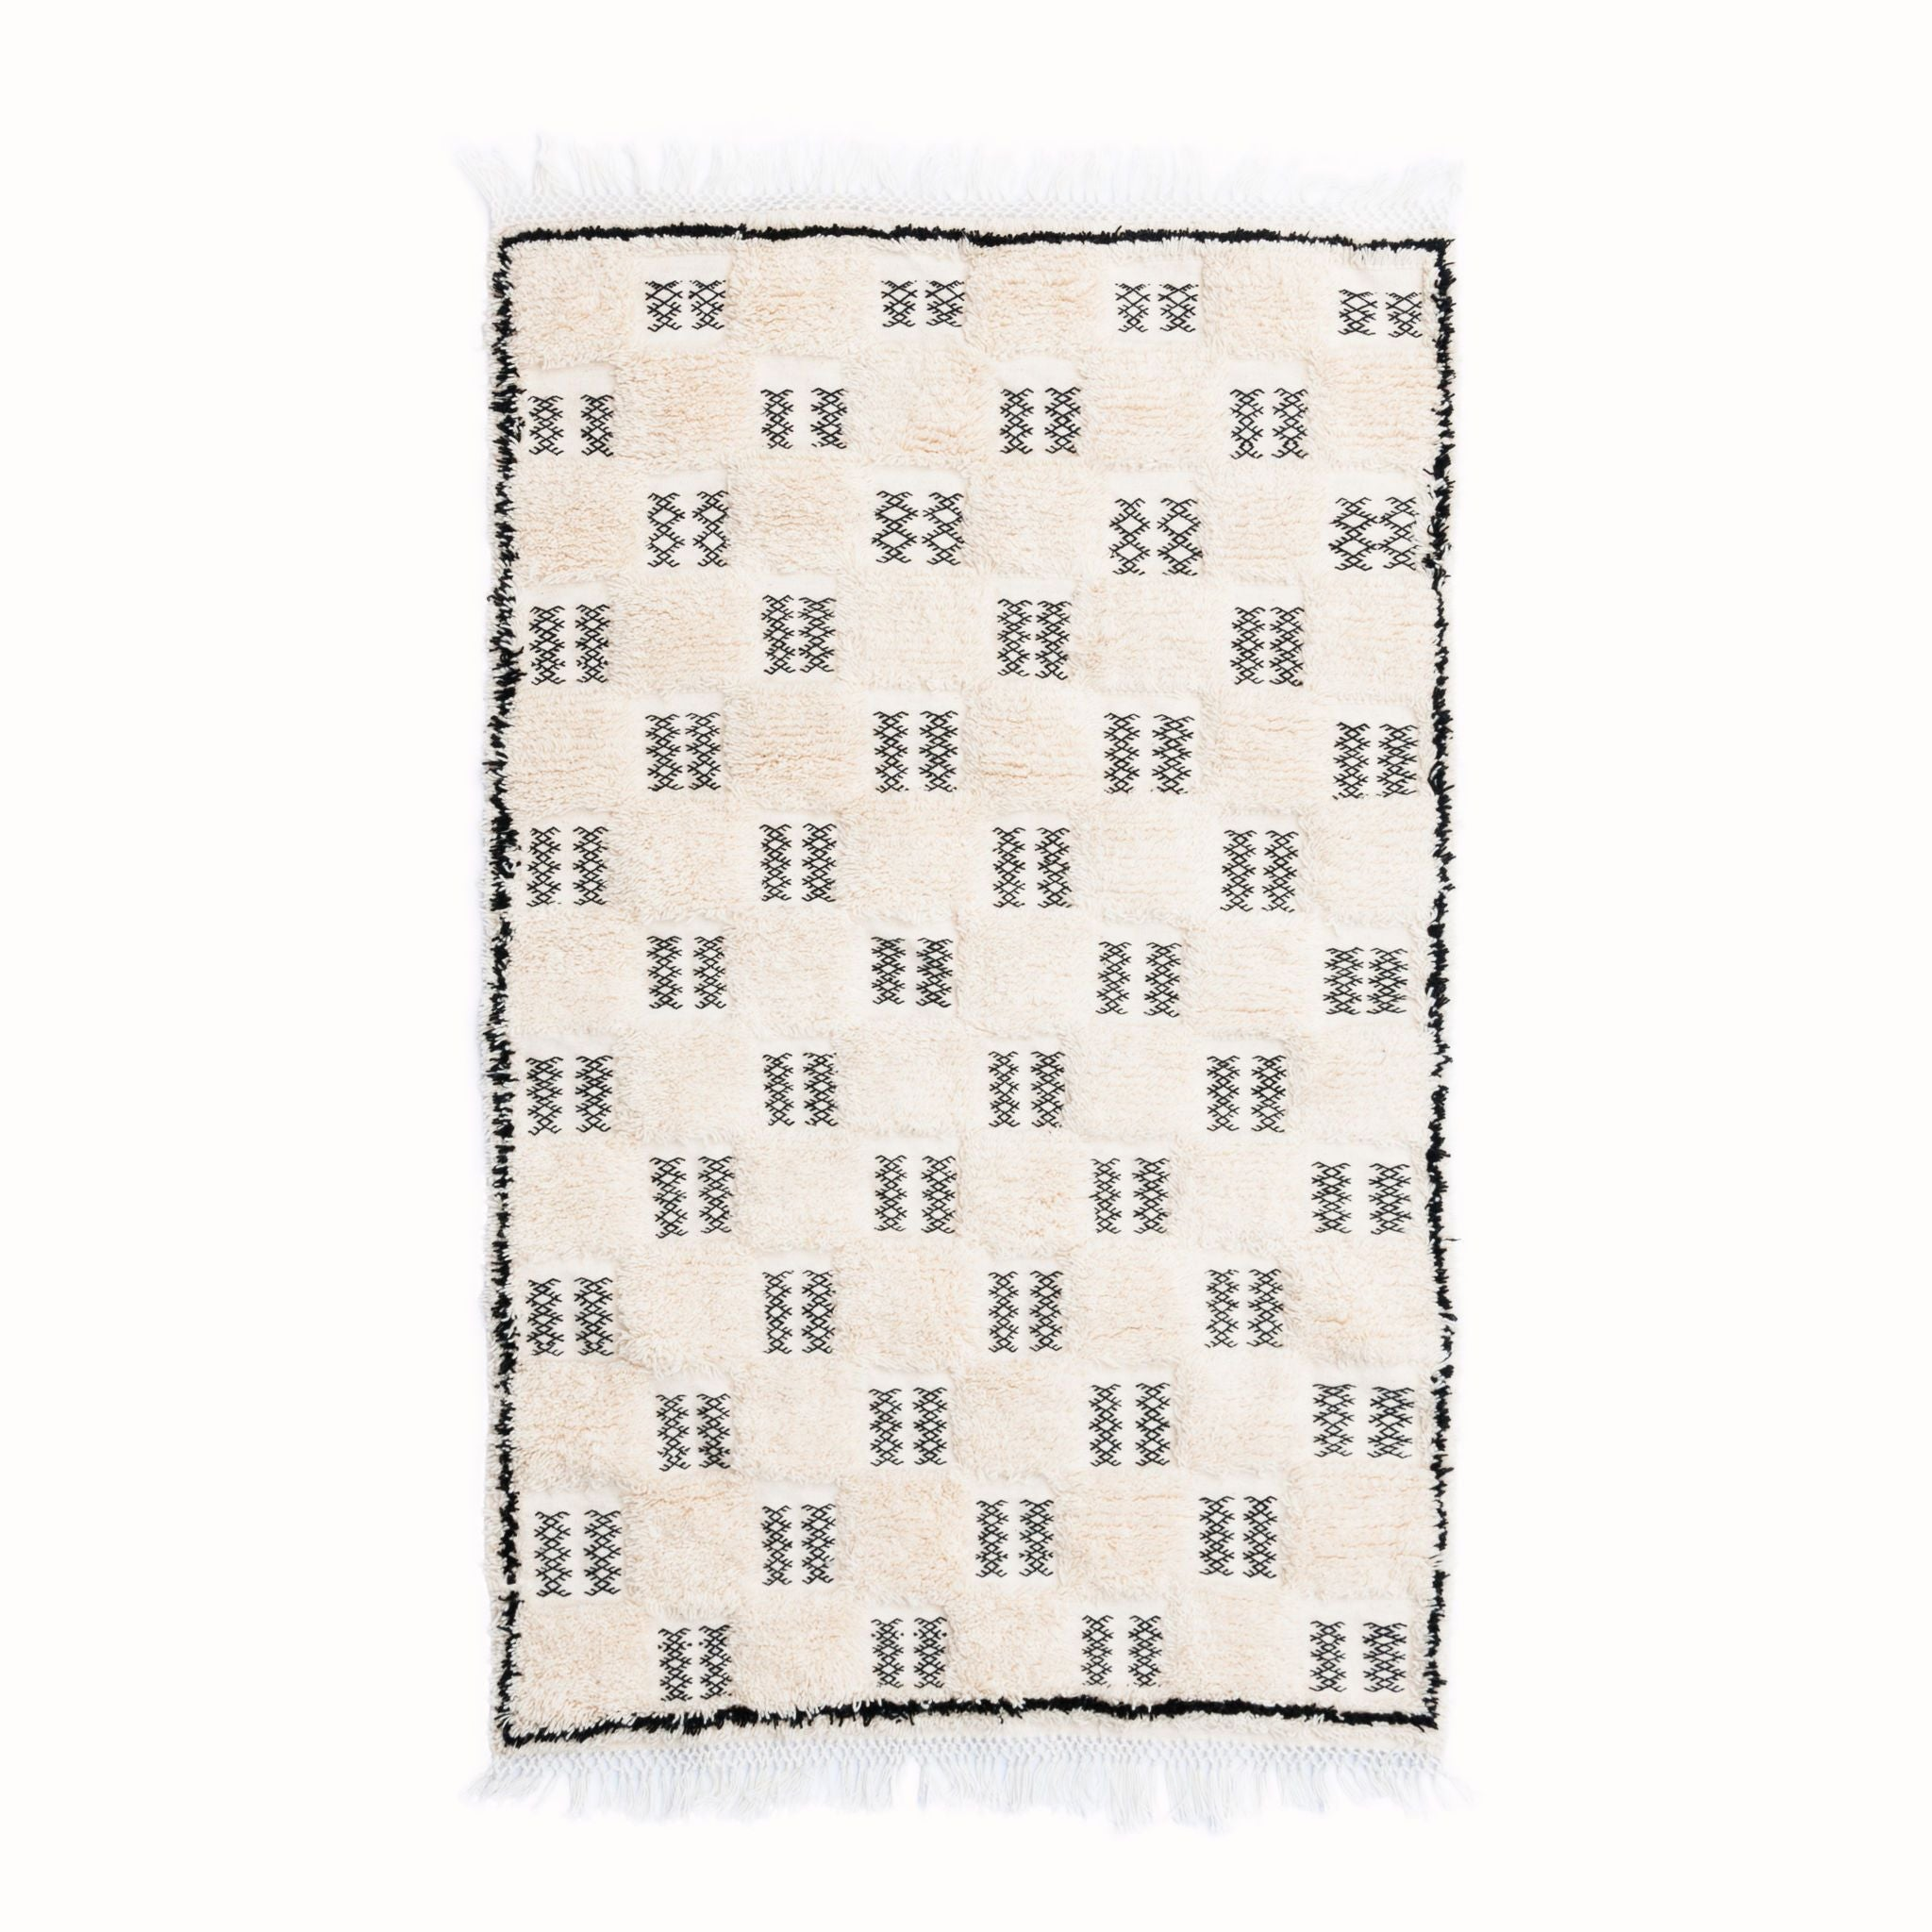 Chequered Marmoucha Rug